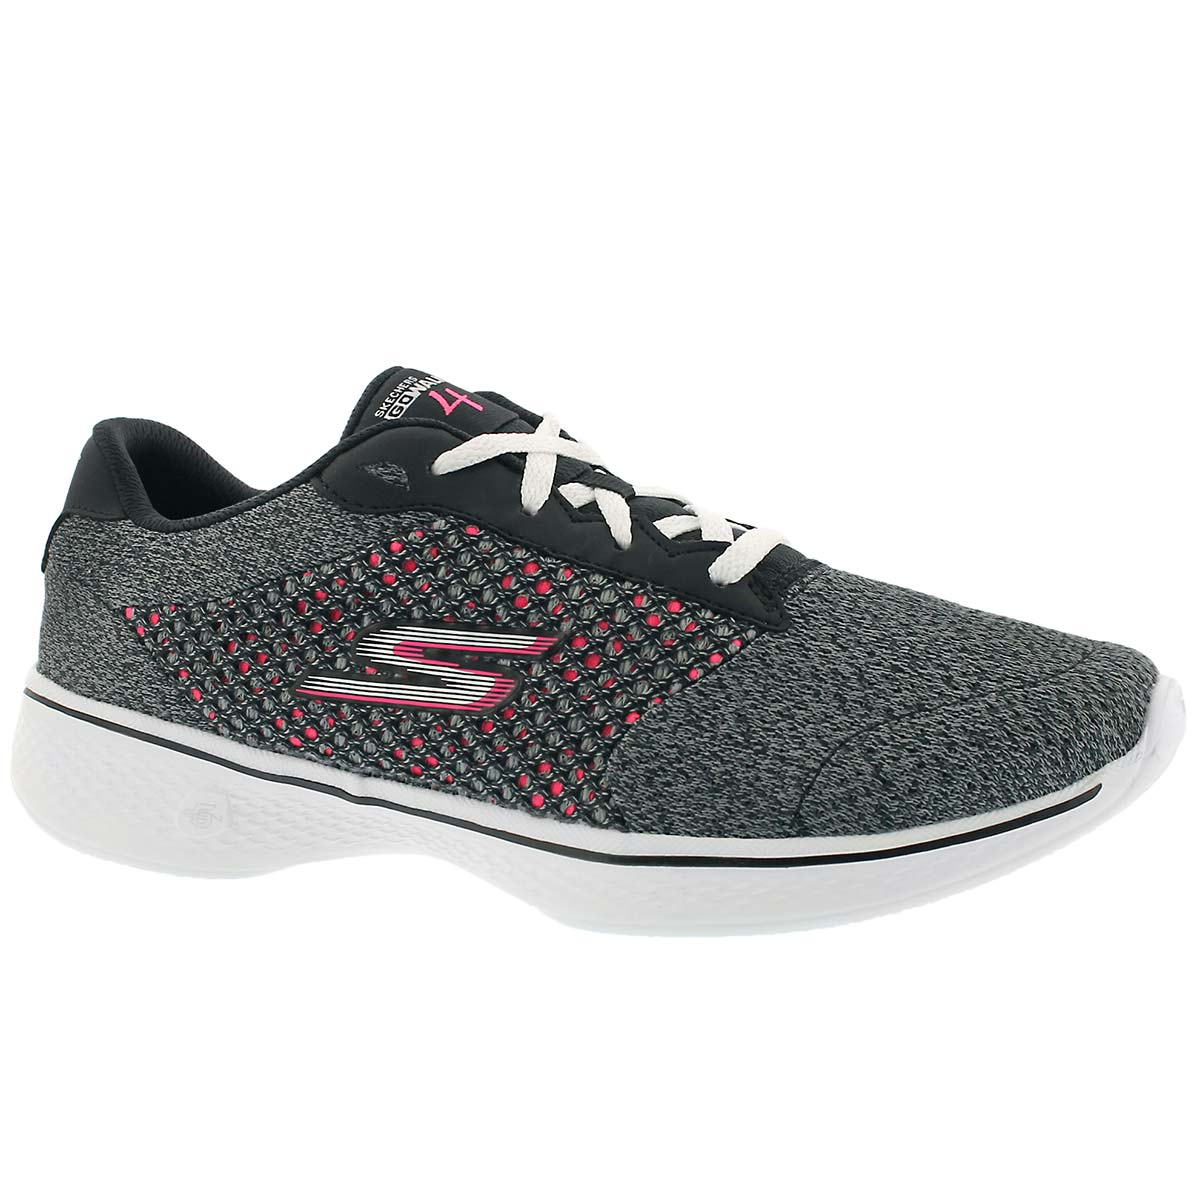 Women's GOwalk 4 EXCEED black/pink lace up shoes